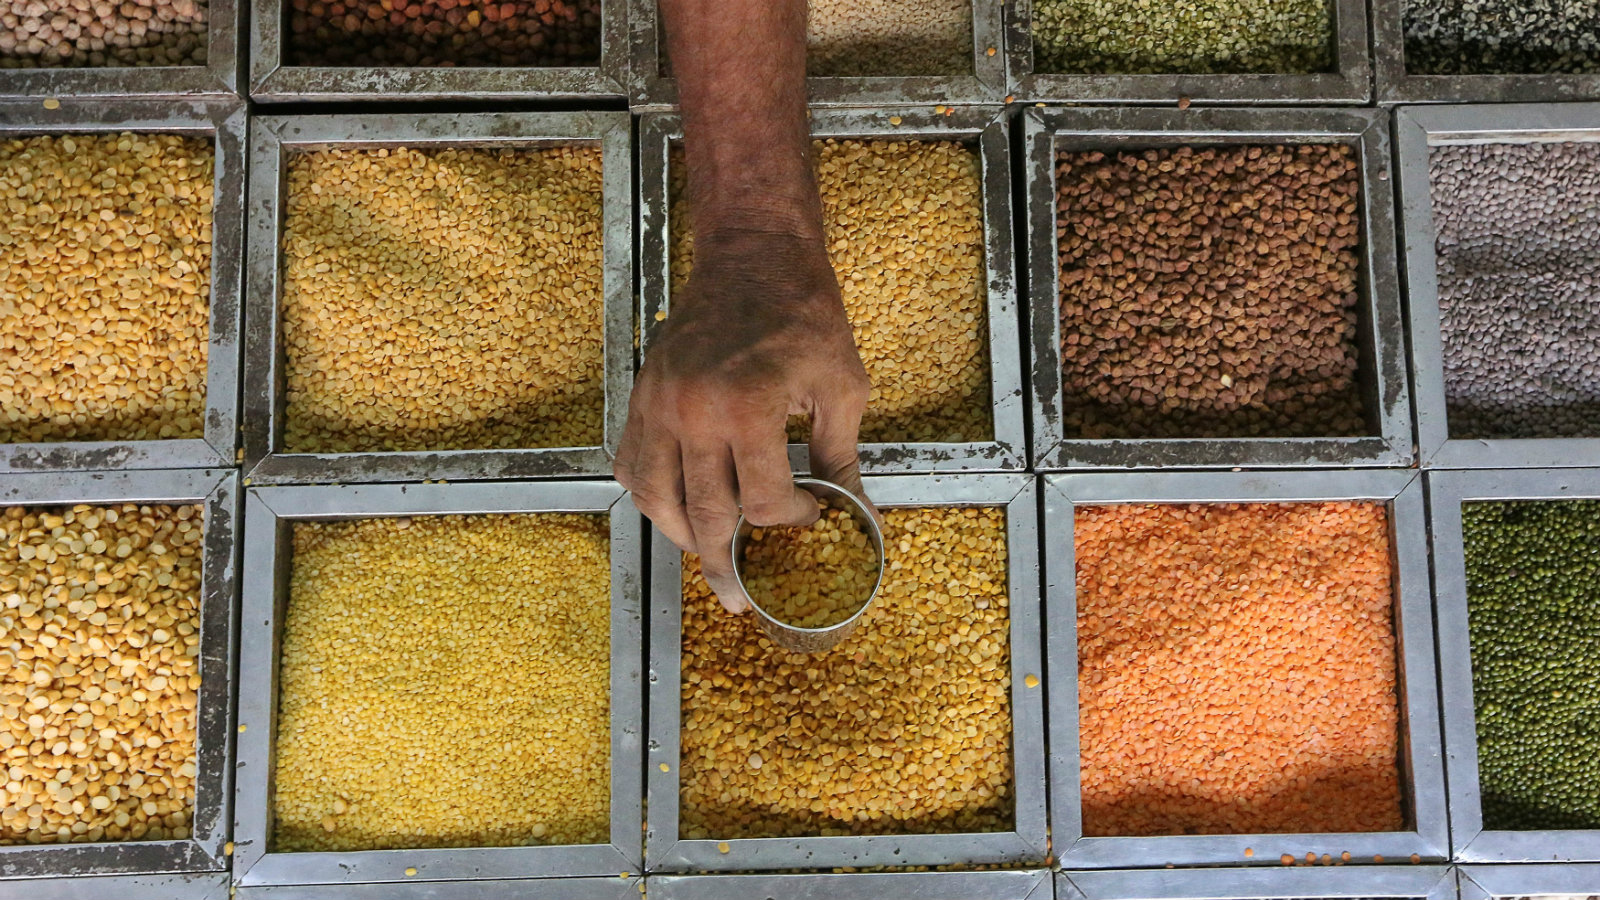 An employee collects lentils from a container inside a grocery store at a residential area in Mumbai, India, May 11, 2016.